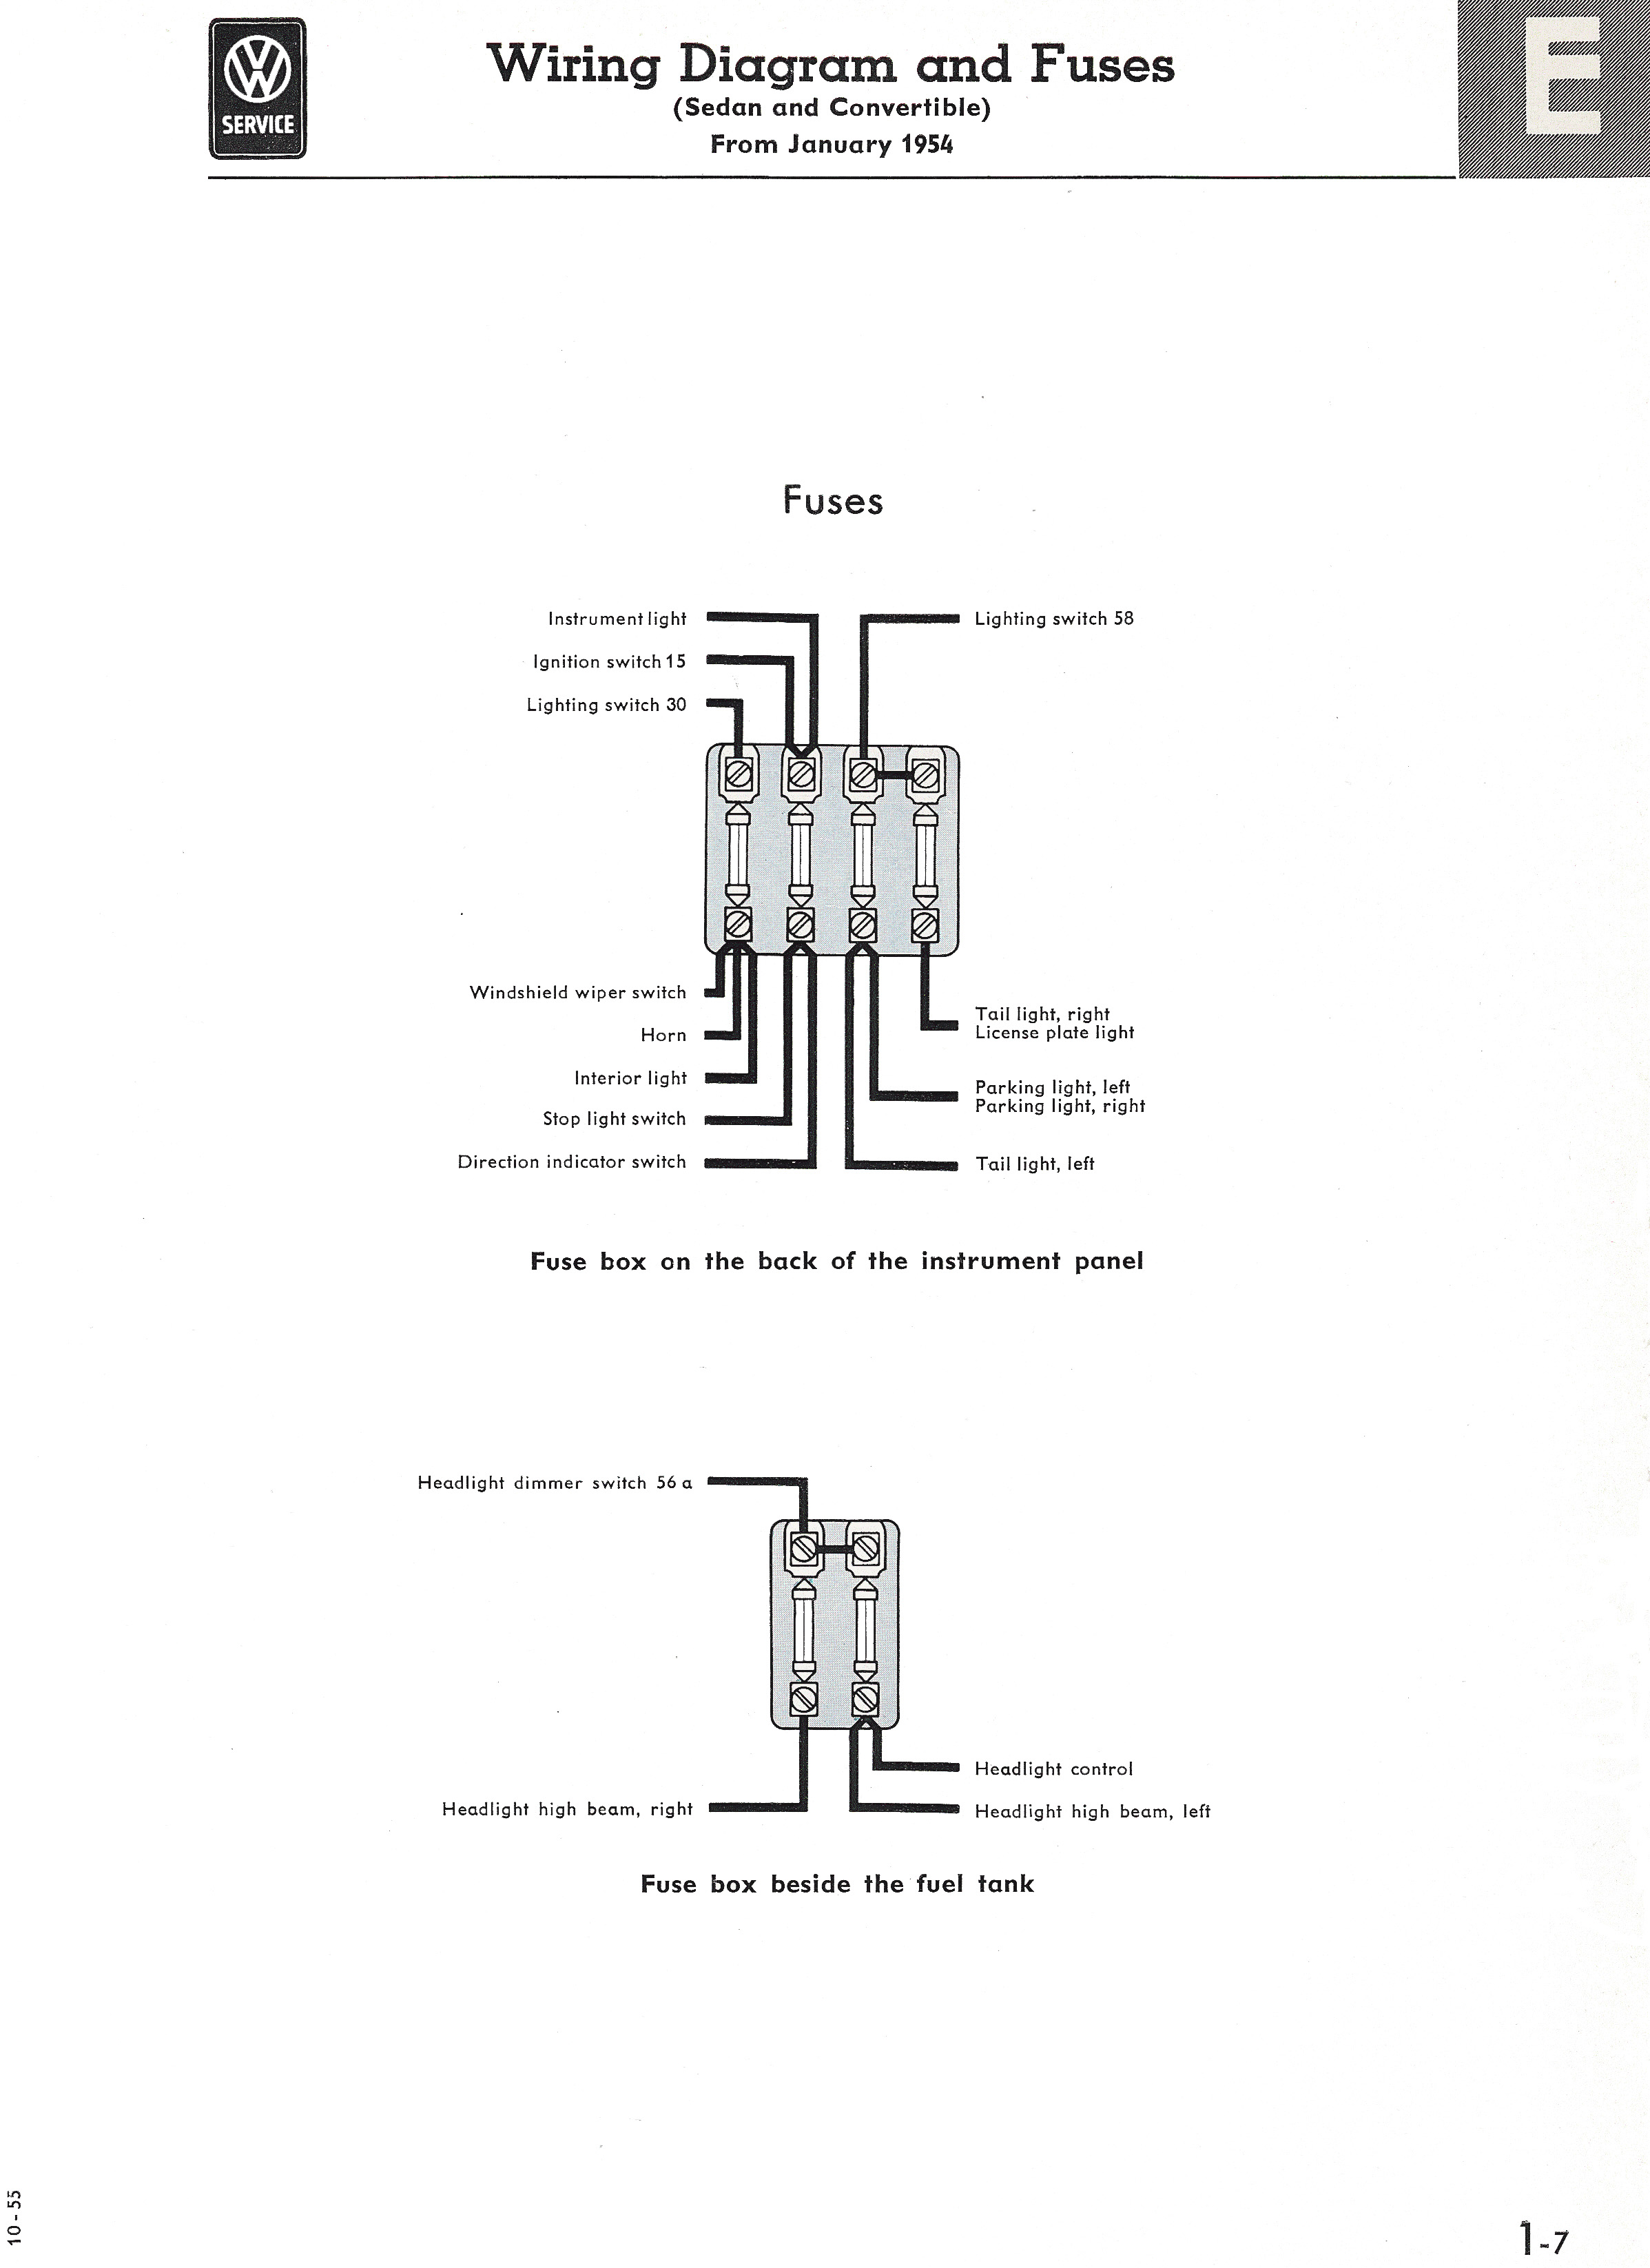 Type 1 Wiring Diagrams 2002 F350 Turn Signal Diagram